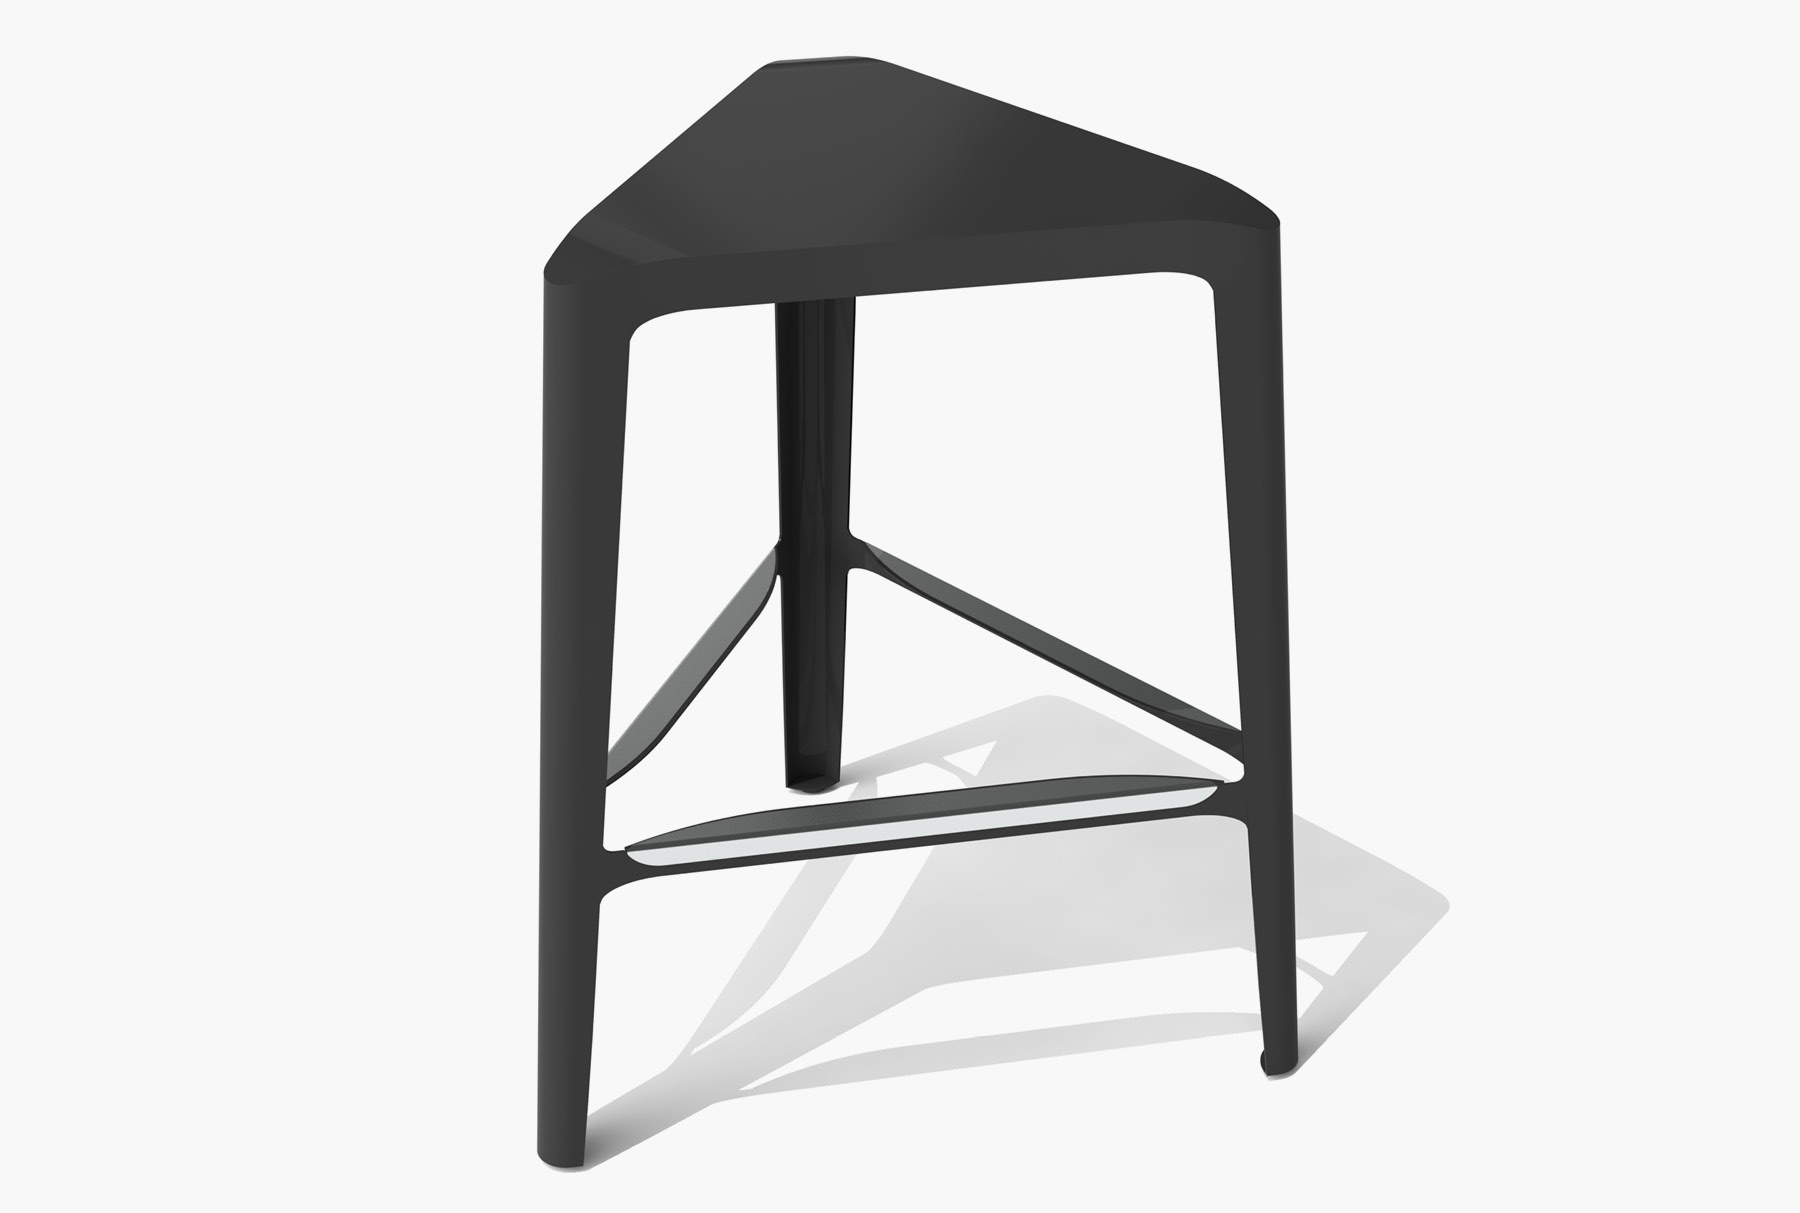 Arktura Clic Mid Stool in Jet Black